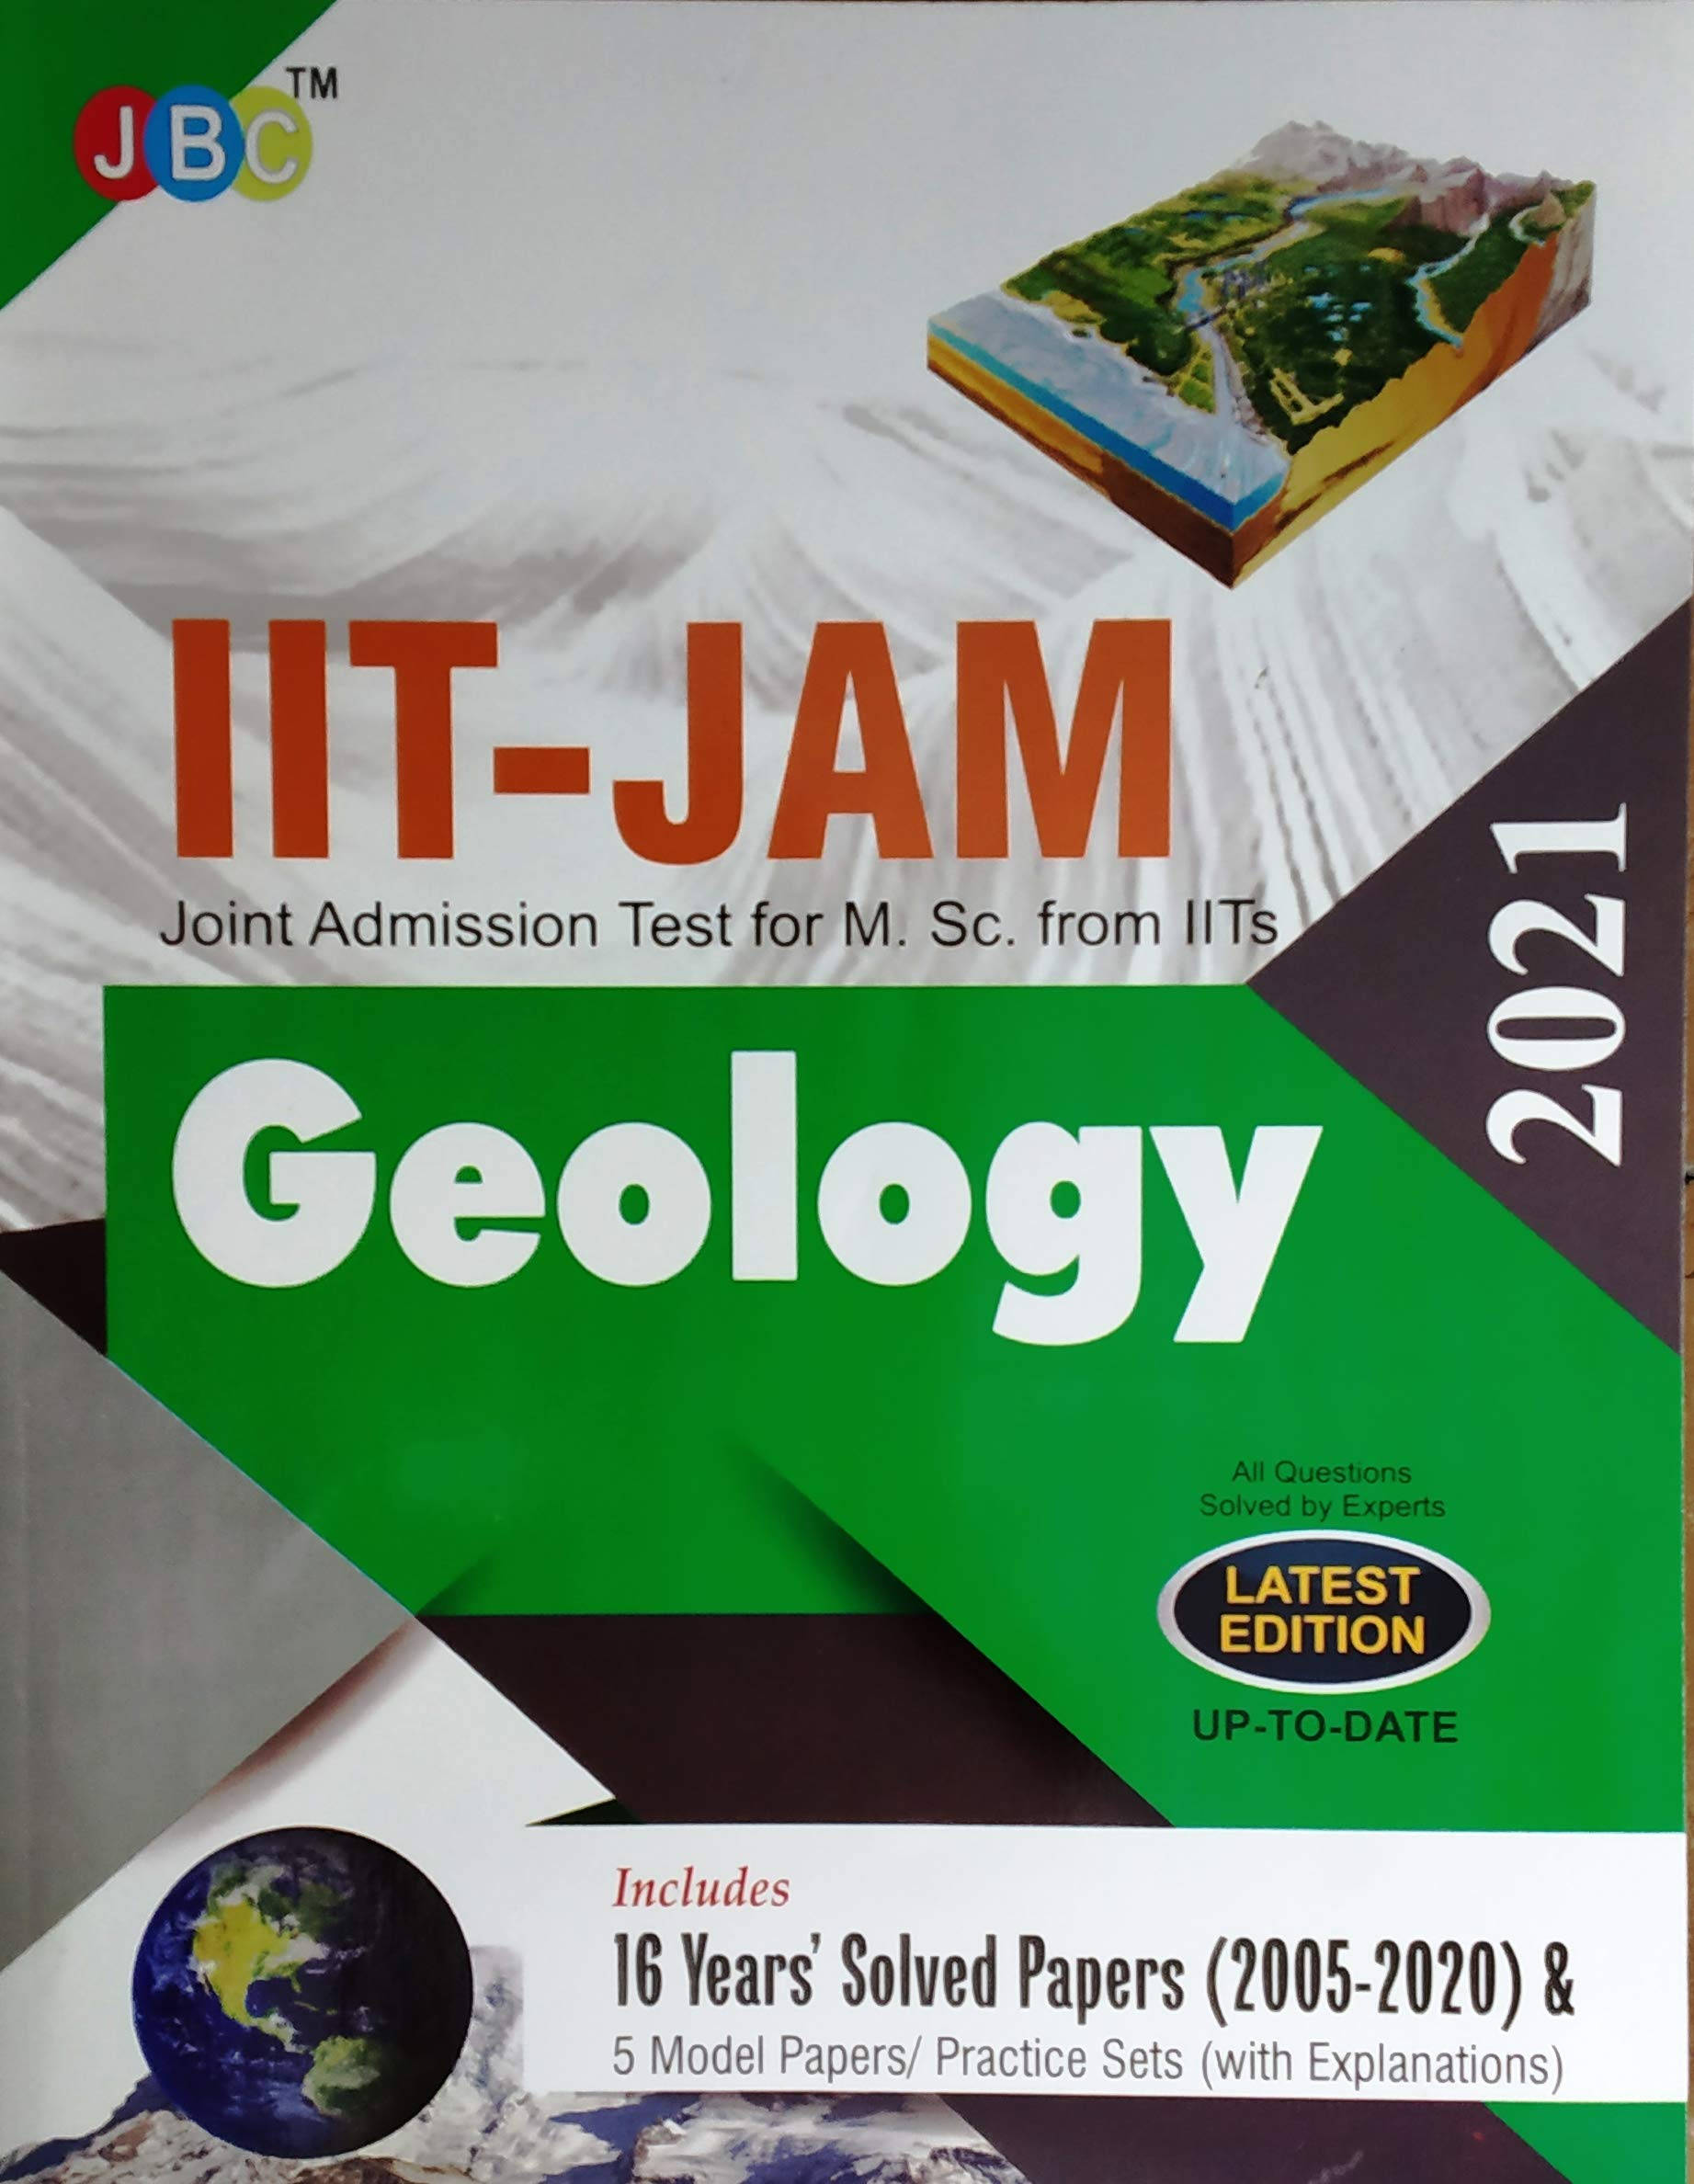 IIT-JAM Joint Admission Test for M.Sc. from IITs Geology 15 Year's Solved Papers (2005-2019) and 5 Model Papers/Practice Sets (With Explanation) 2020